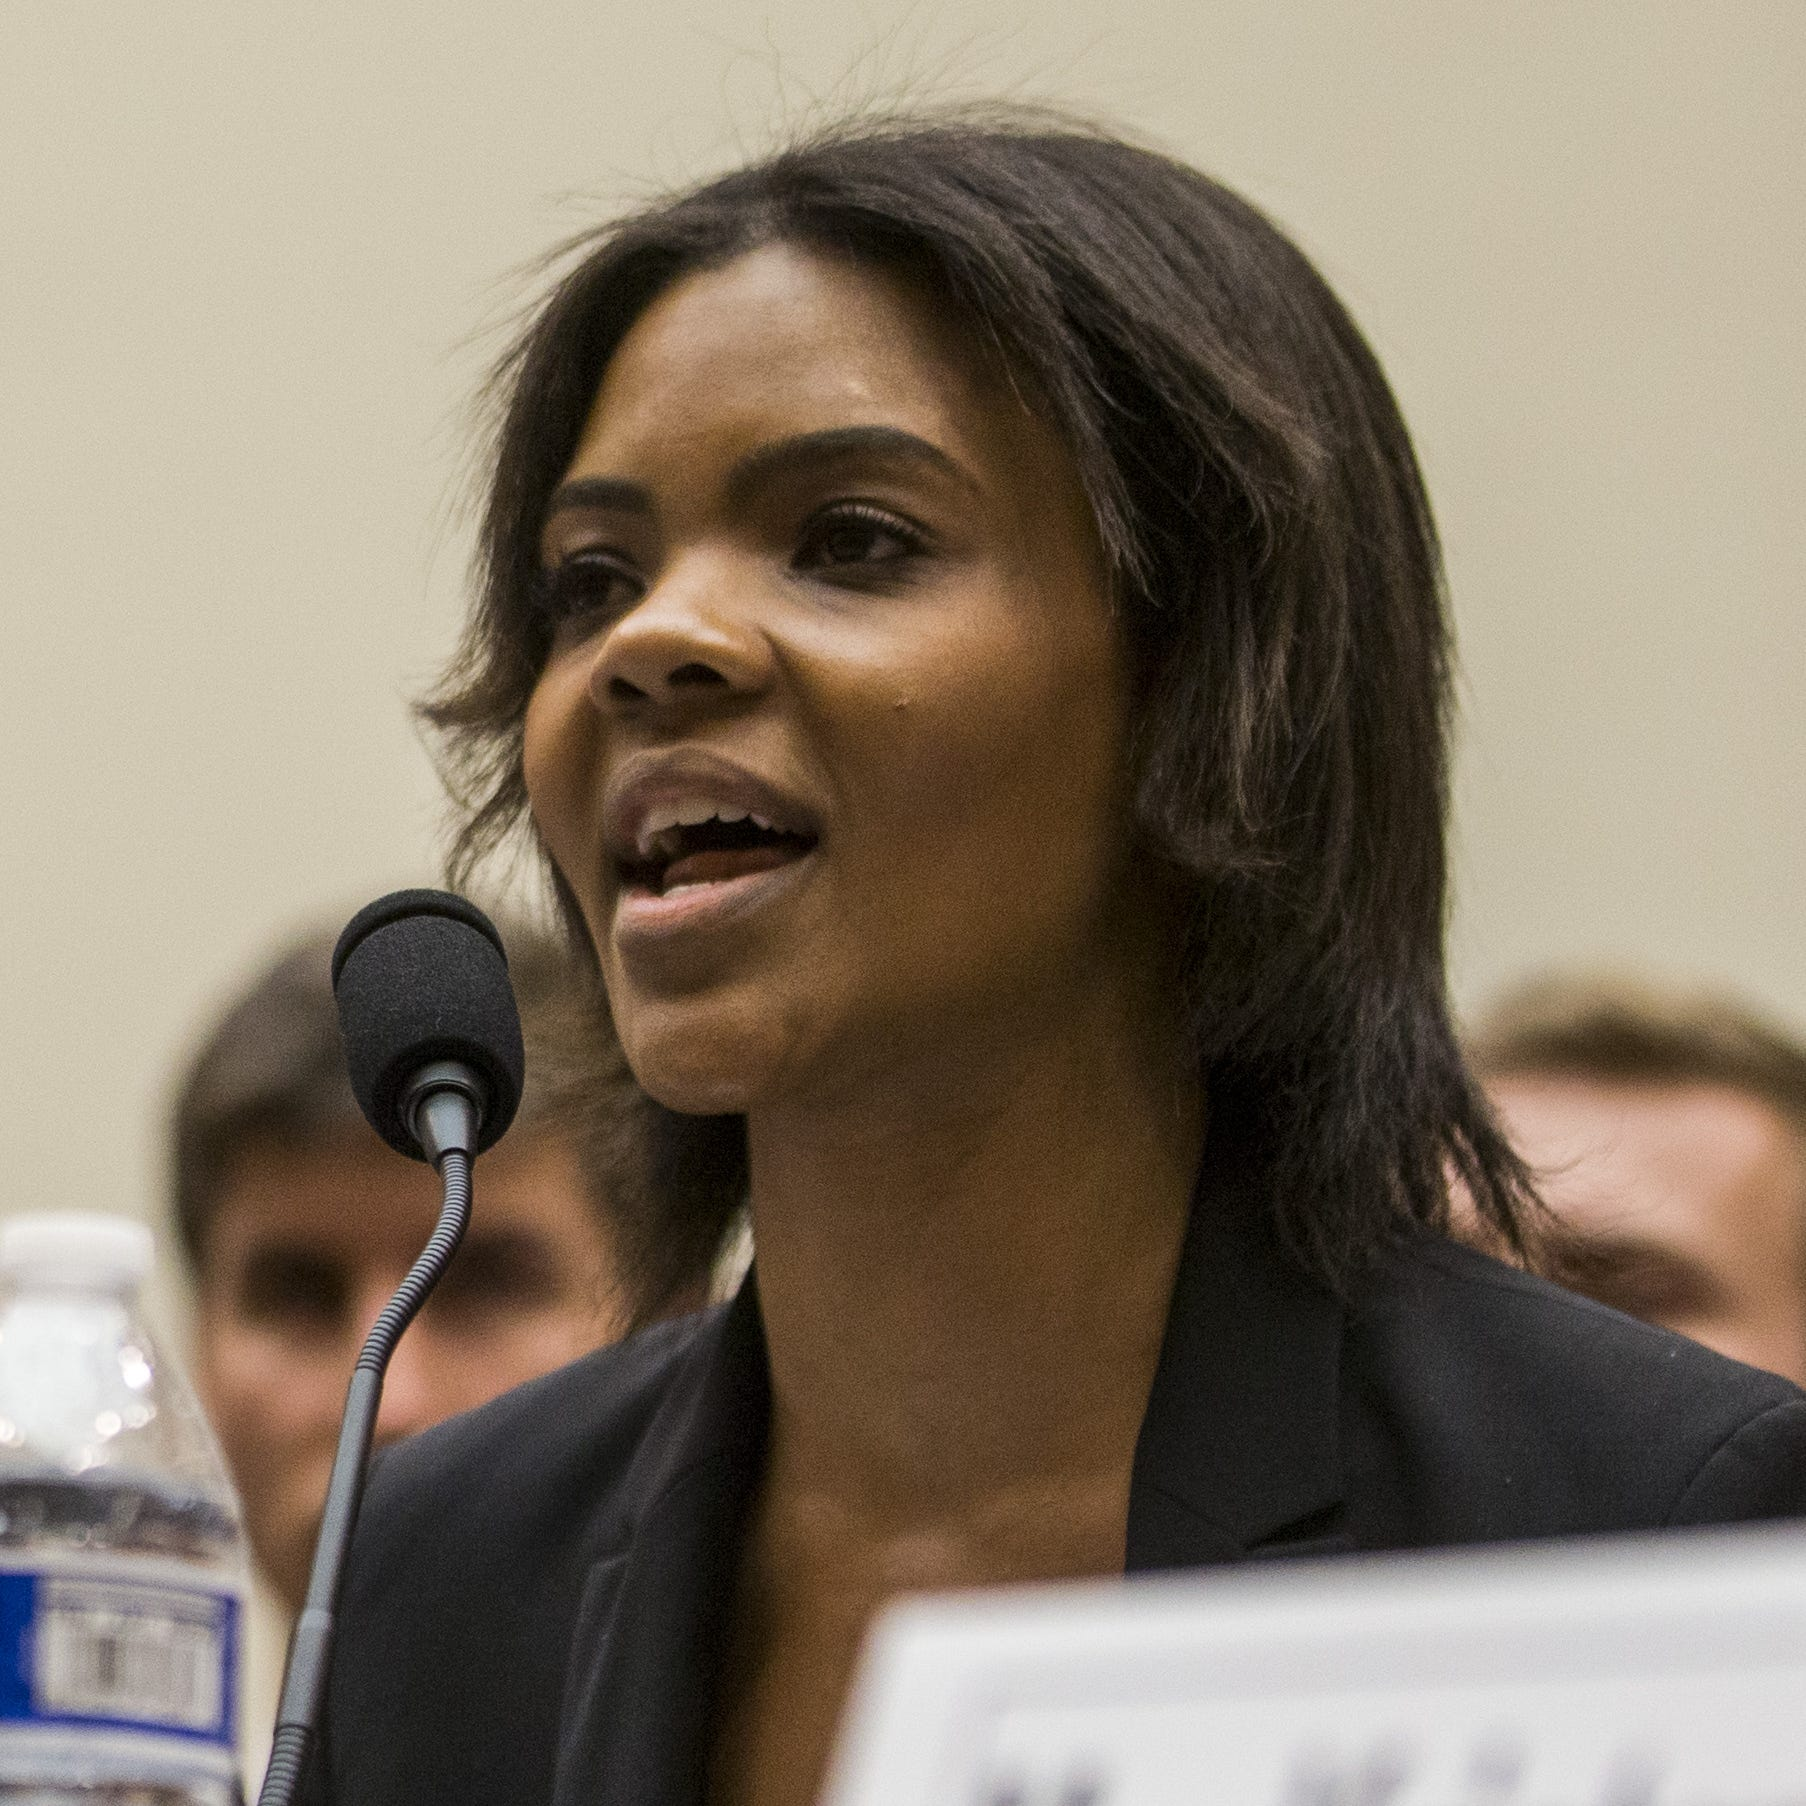 Candace Owens of Turning Point USA testifies during a House Judiciary Committee hearing on hate crimes and the rise of white nationalism on Capitol Hill in Washington, April 9, 2019.